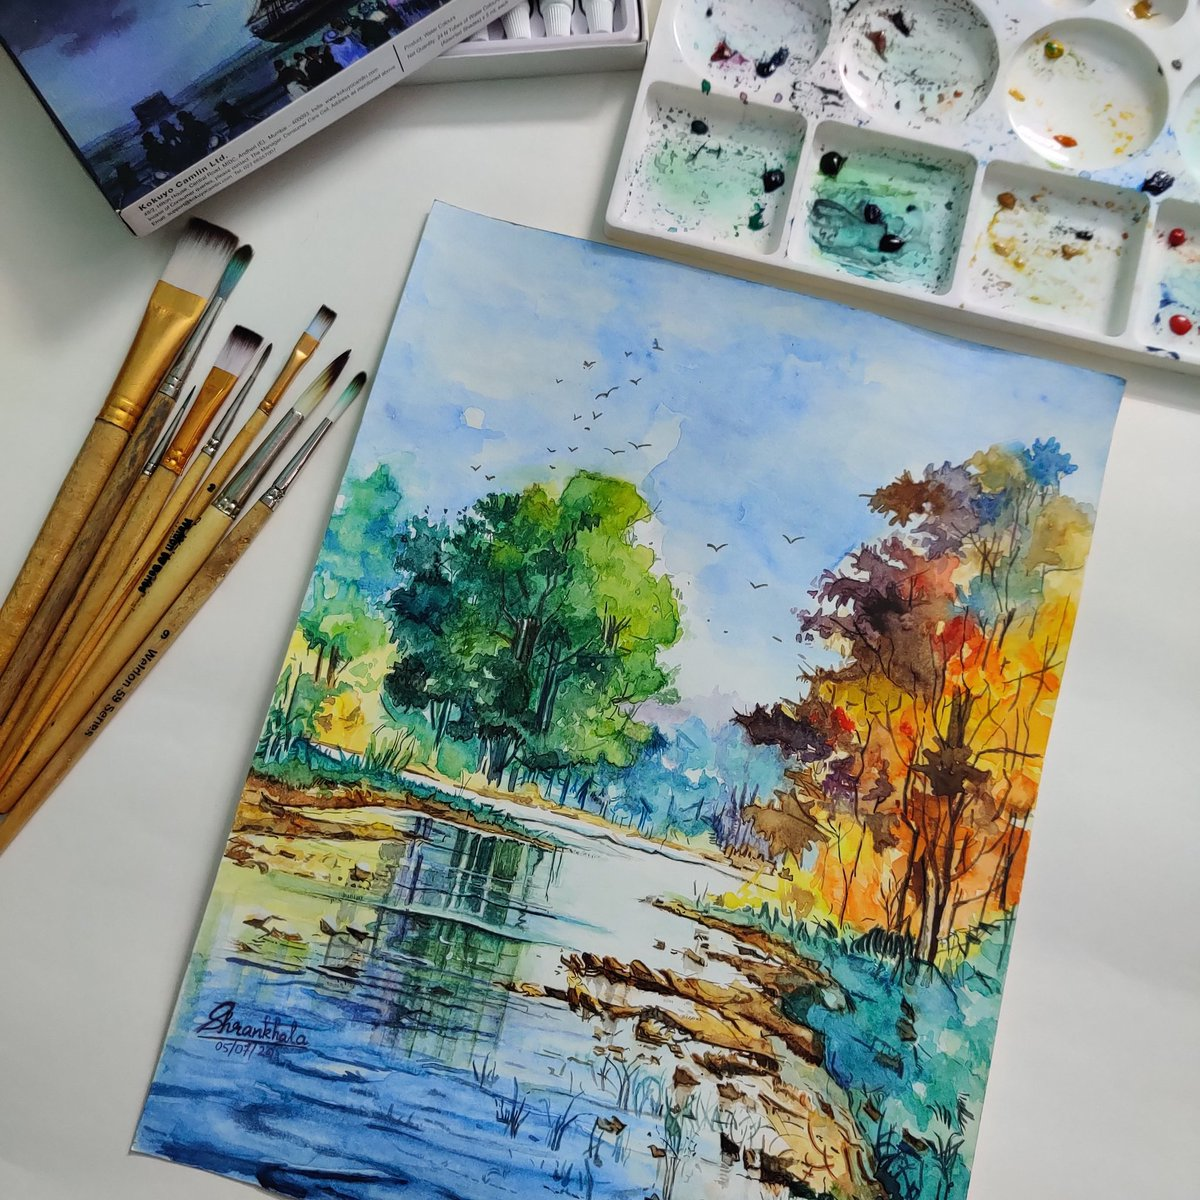 ART IS THERAPY #Watercolor #paintings #sundayvibes #watercolorart pic.twitter.com/a9jmXHwARY